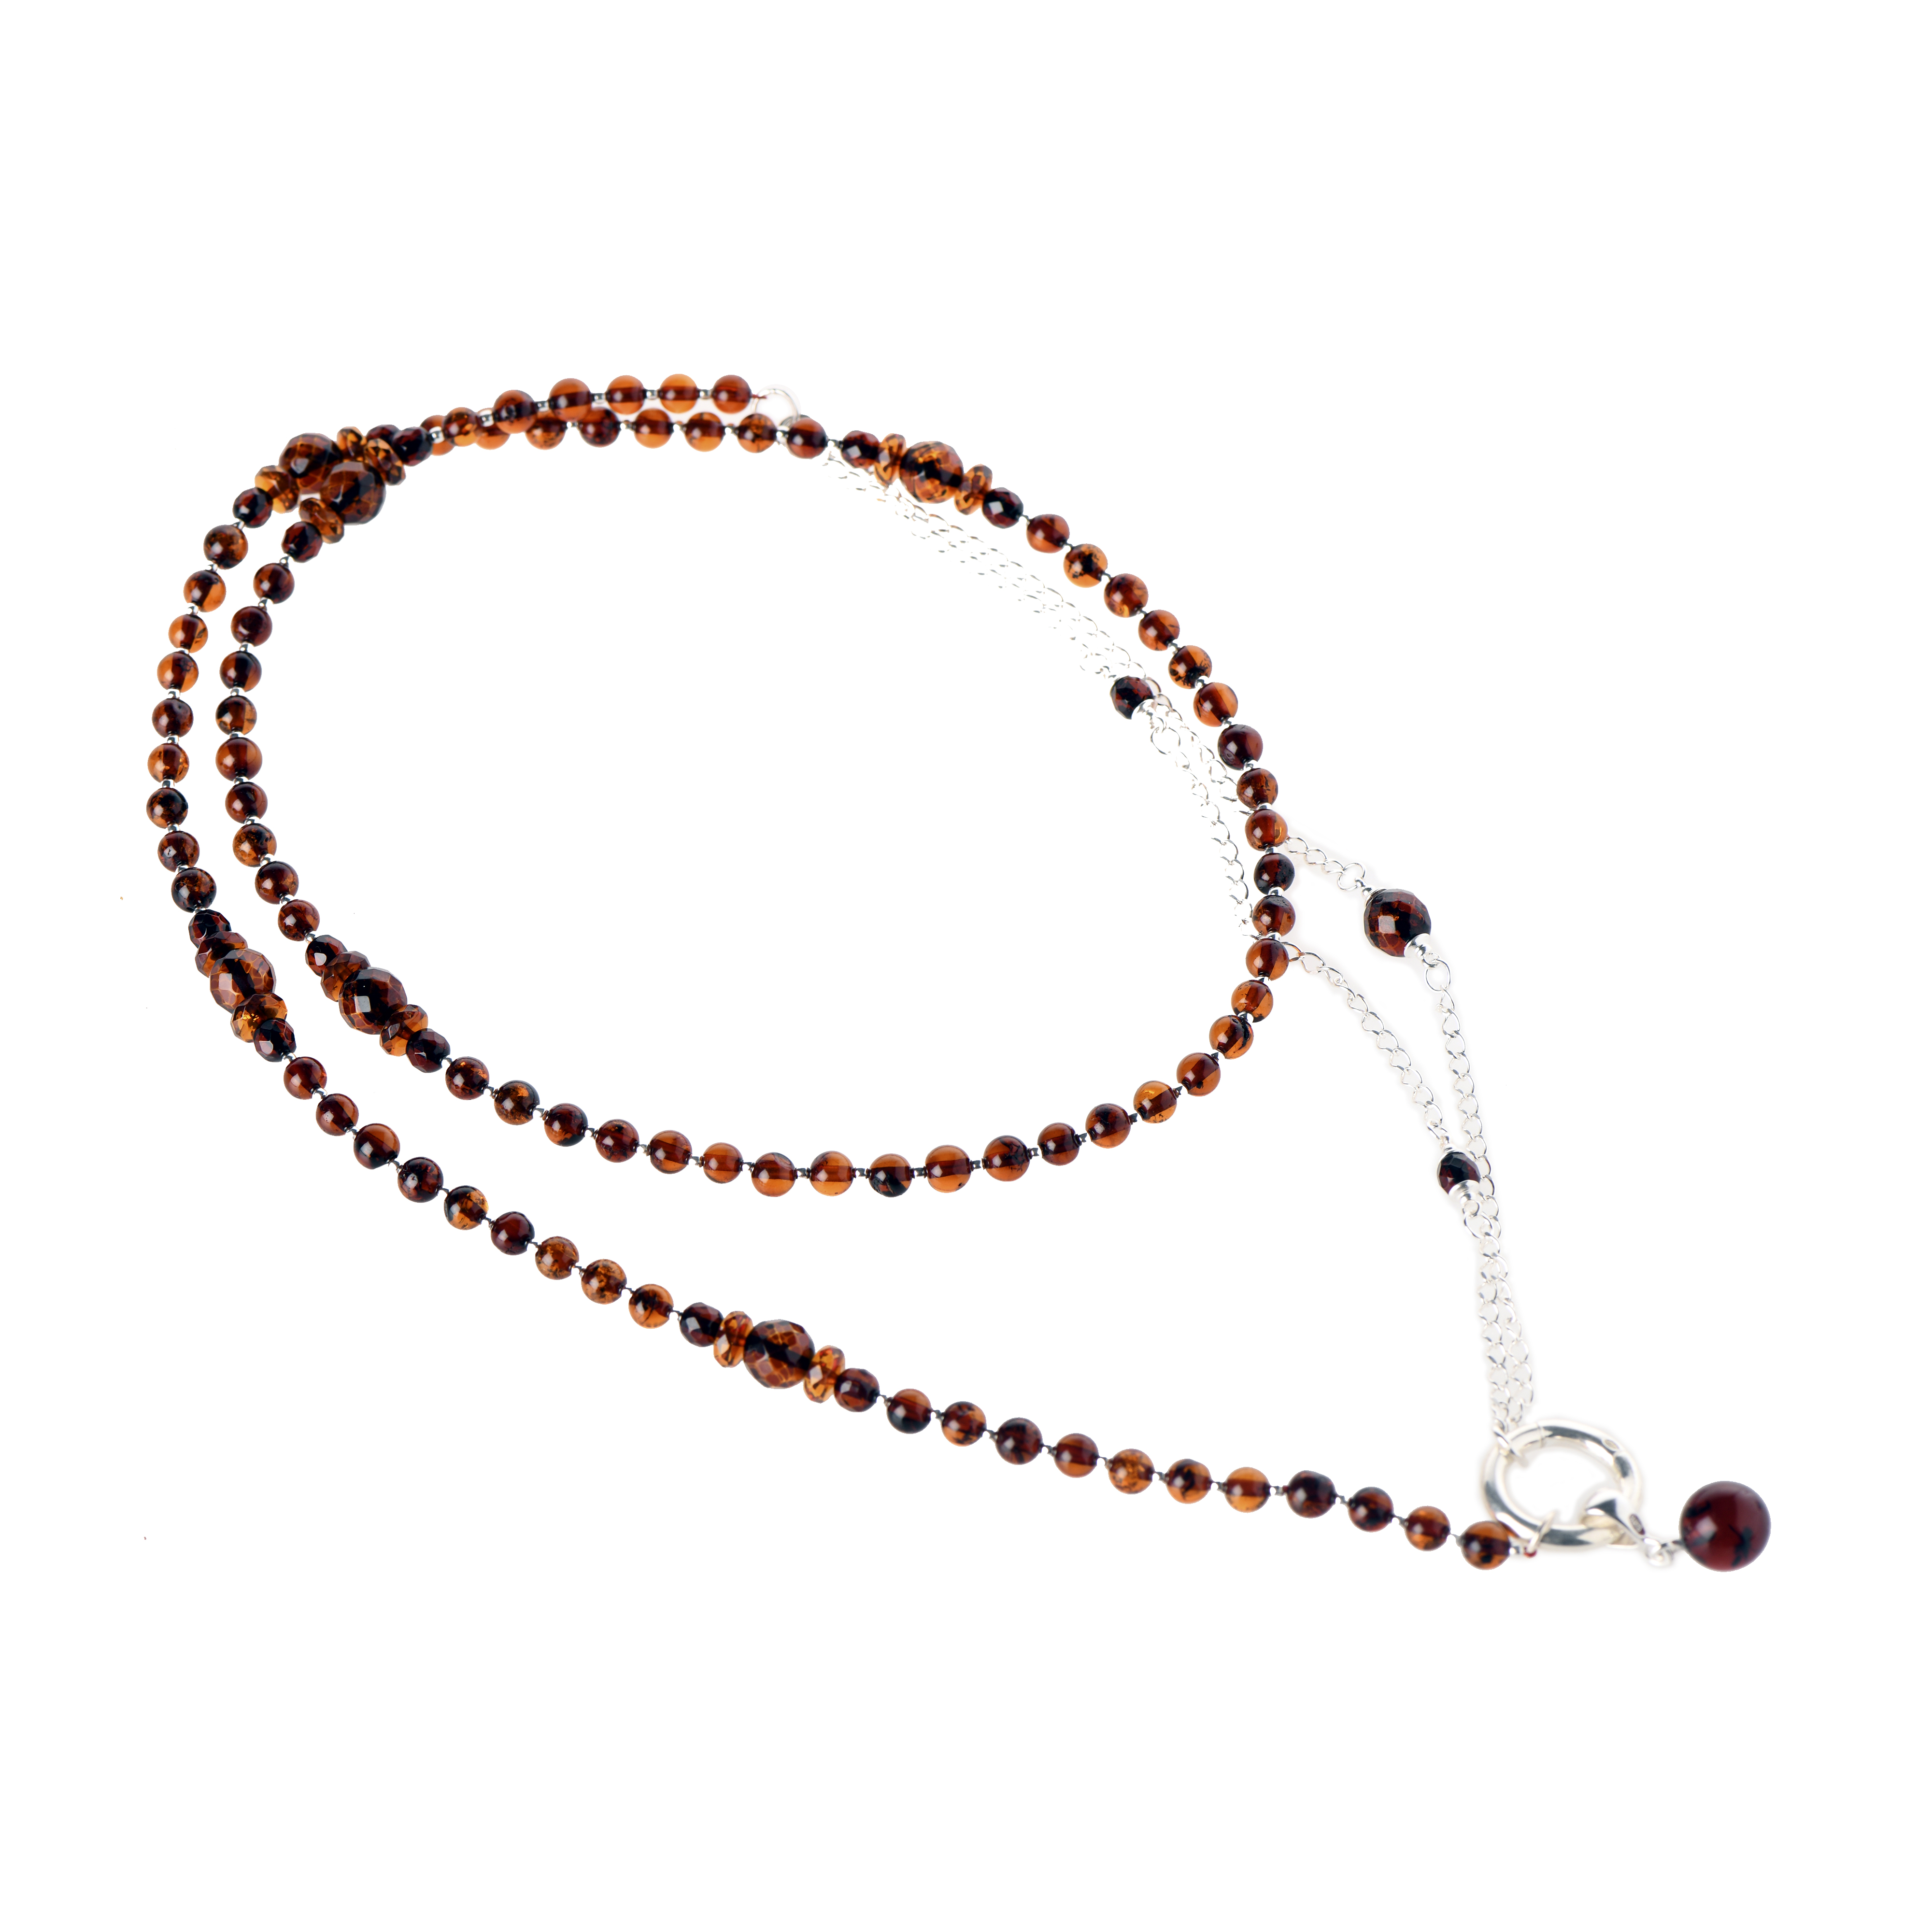 Delicate Cognac Amber Necklace With Chain And Pendant NF3